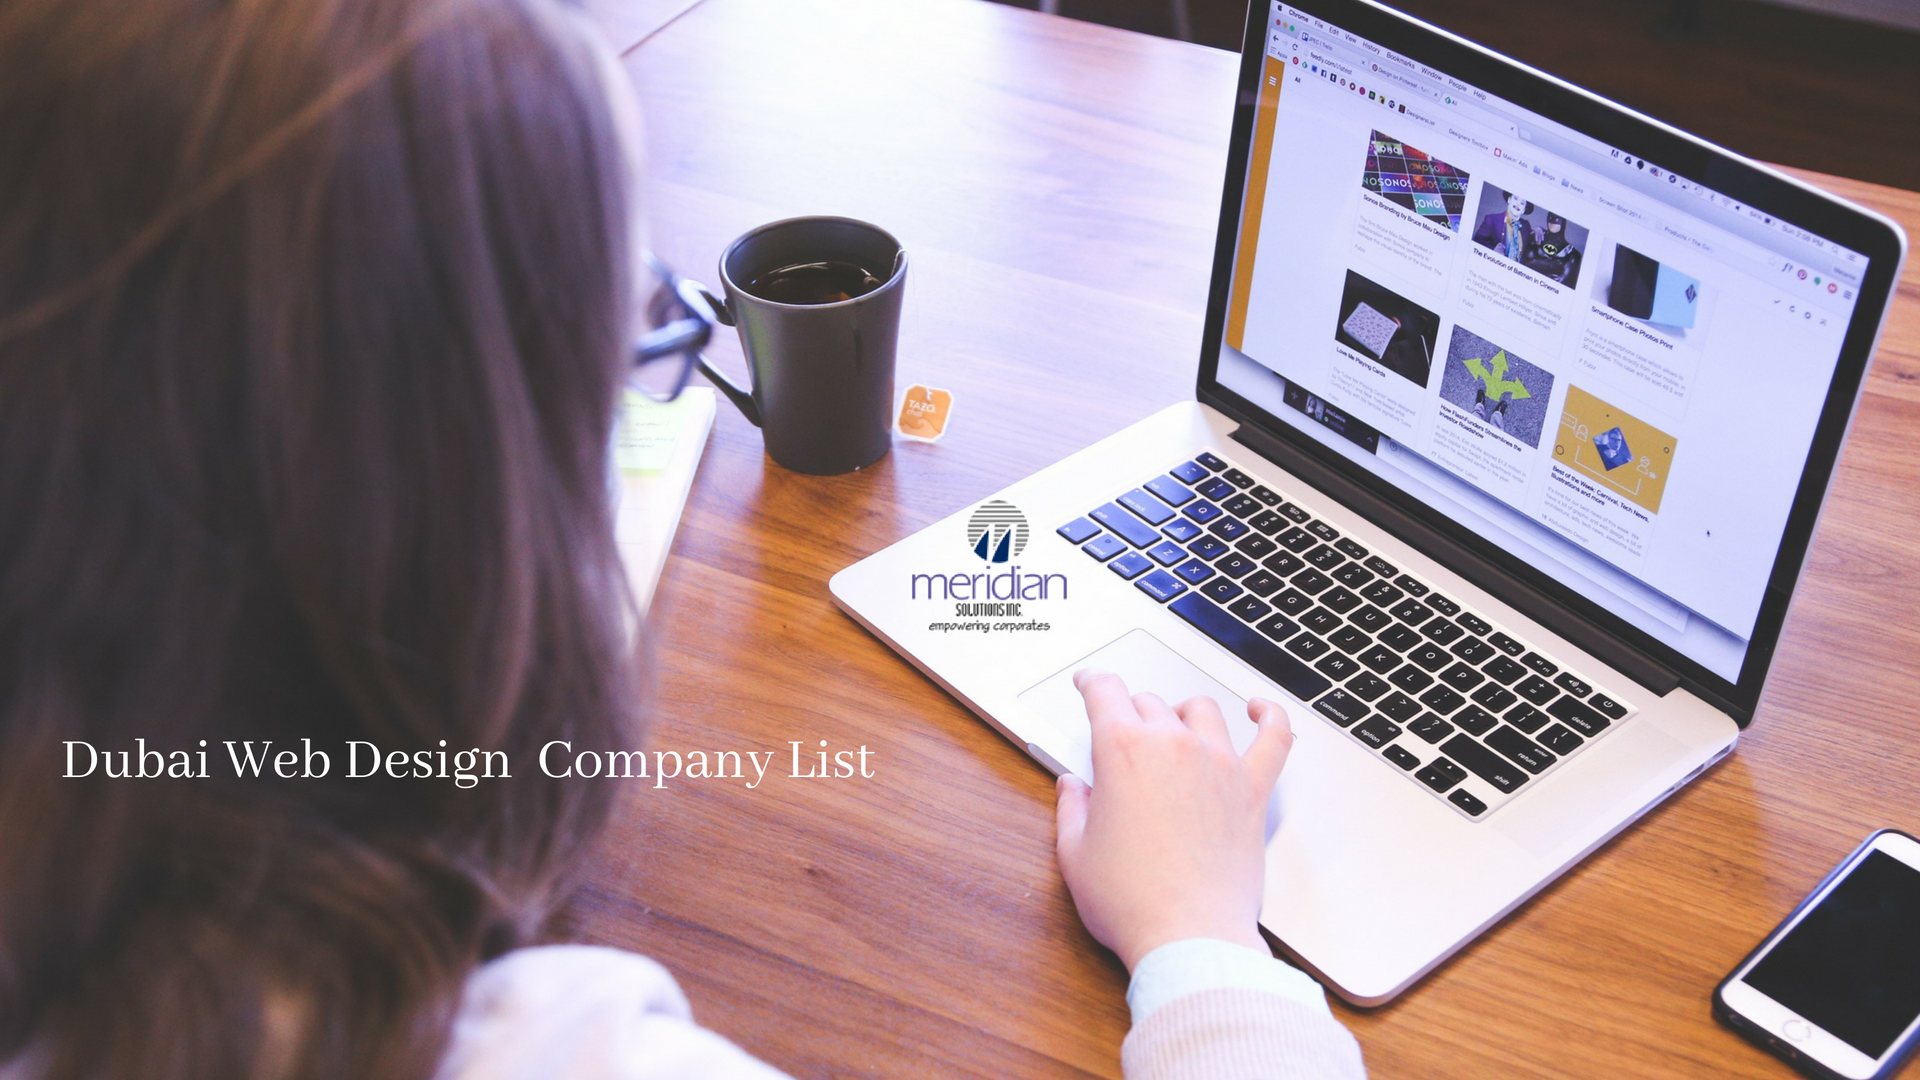 Pin On Dubai Web Design Company List